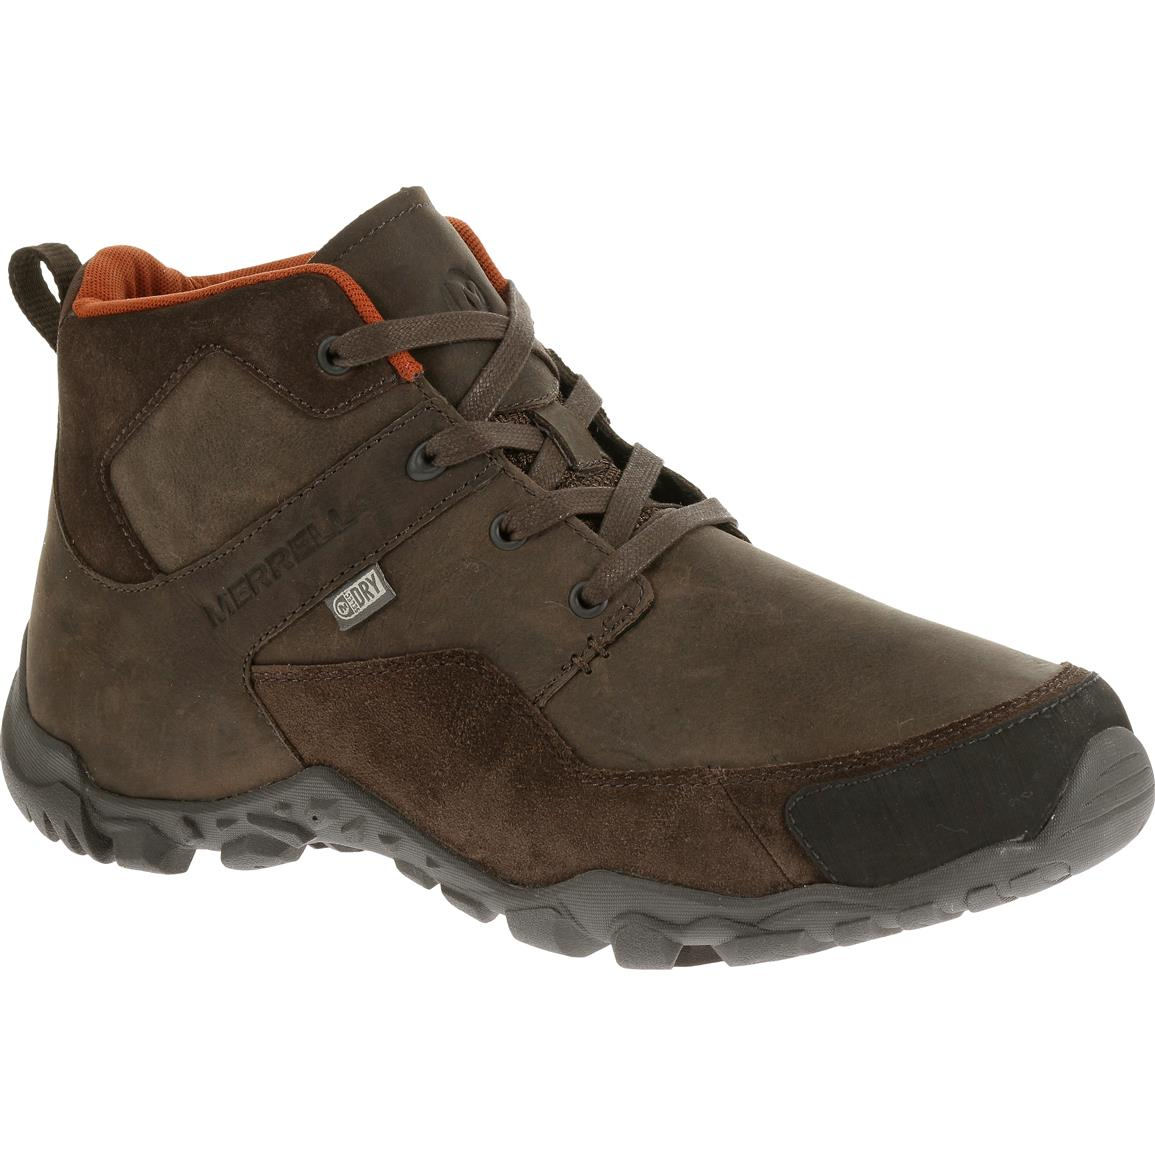 Waterproof Shoes For Men Review